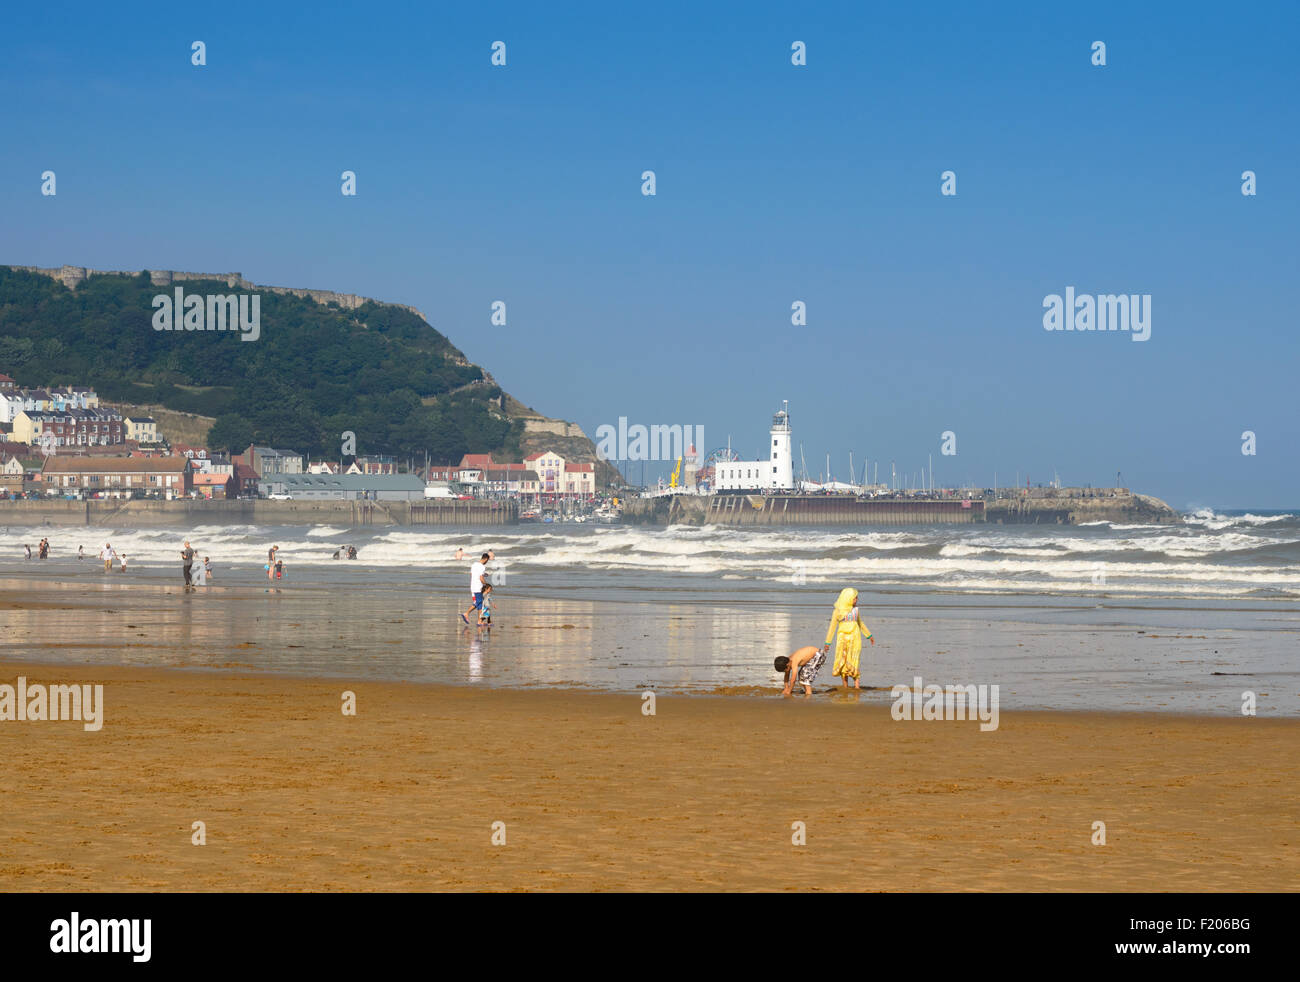 A woman (assumed to be Muslim) on beach with young girl. In Scarborough, England. - Stock Image